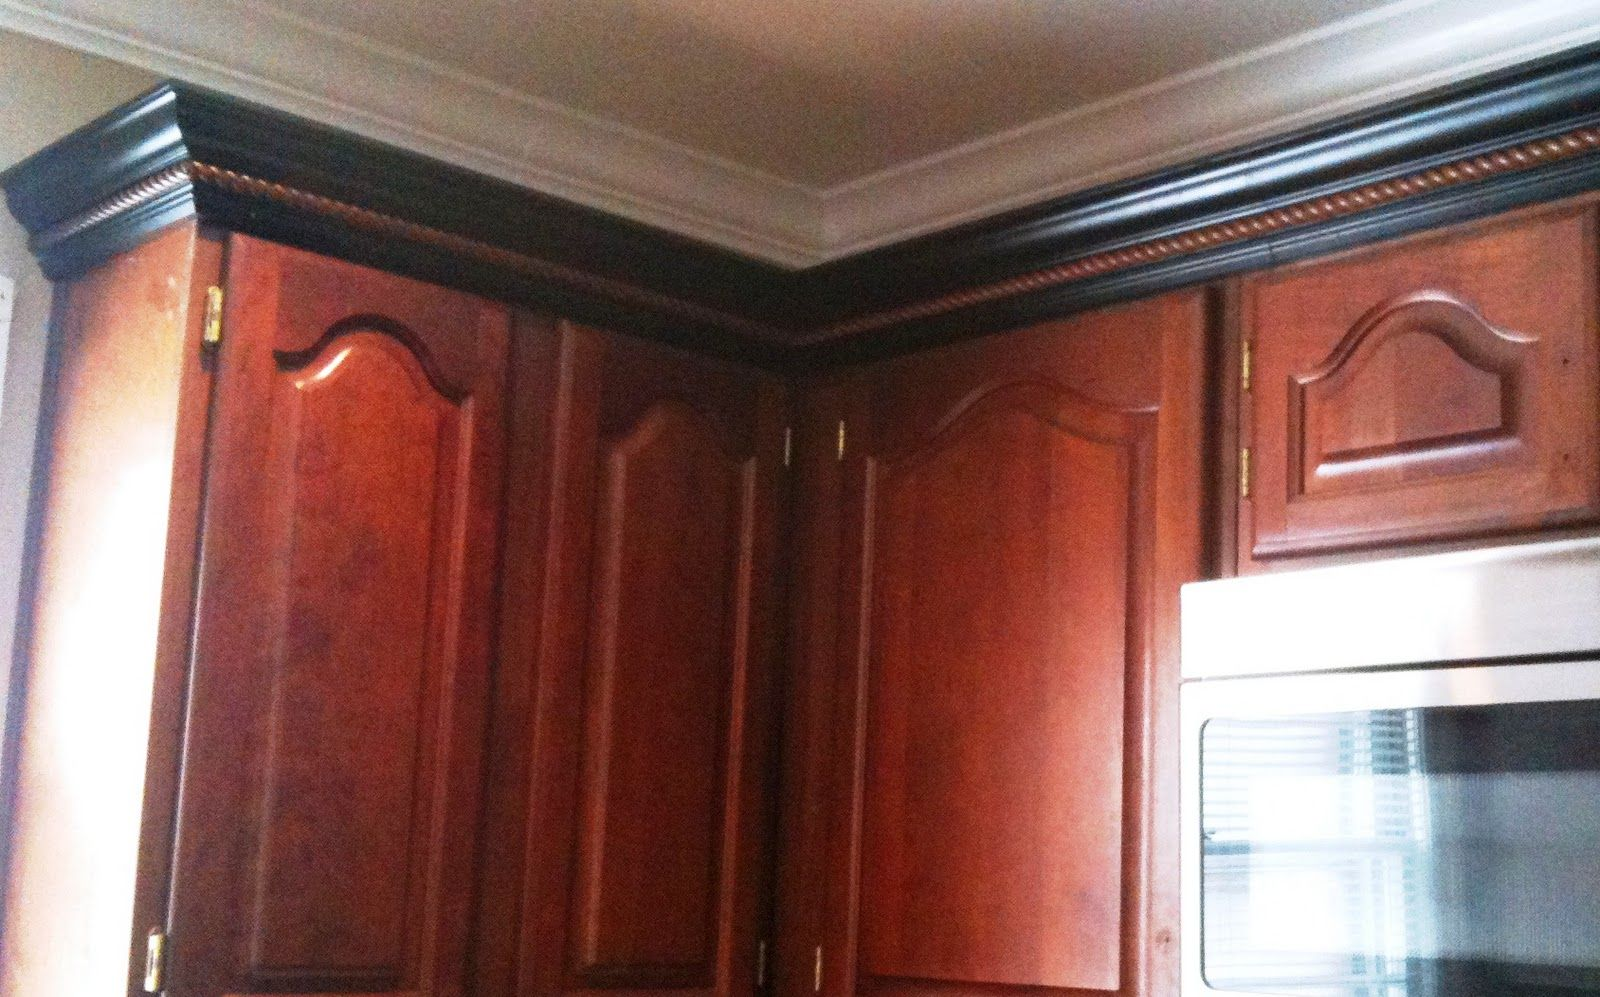 Kitchen Cabinets With Black Trim Cherry Cabinets Black Molding Black Crown Molding